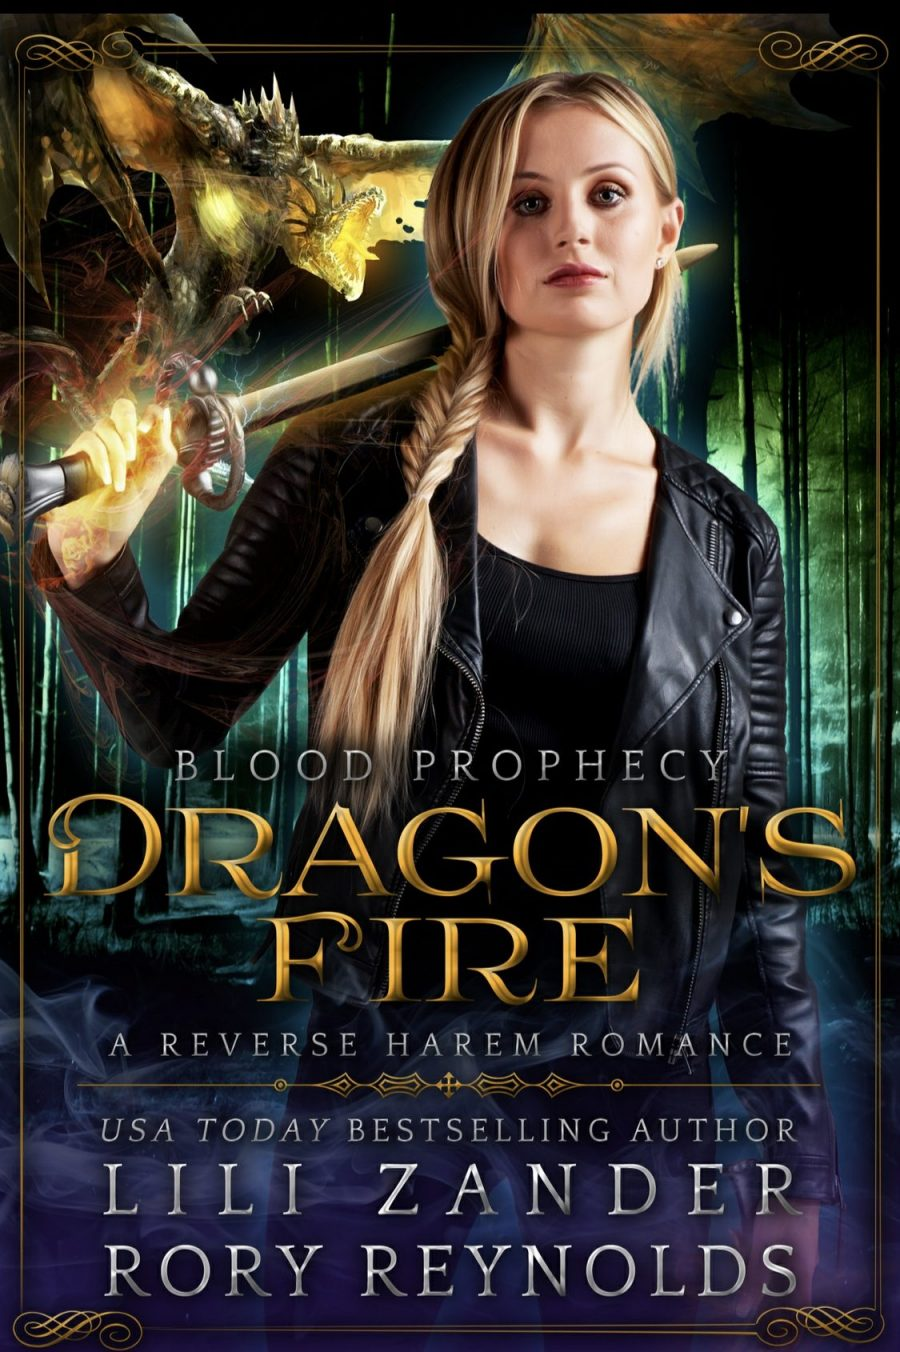 Dragons Fire *Blood Prophecy Book 1 - 5* by Lili Zander and Rory Reynolds - A Book Review #BookReview #RH #WhyChoose #ReverseHarem #PNR #Paranormal #MediumBurn